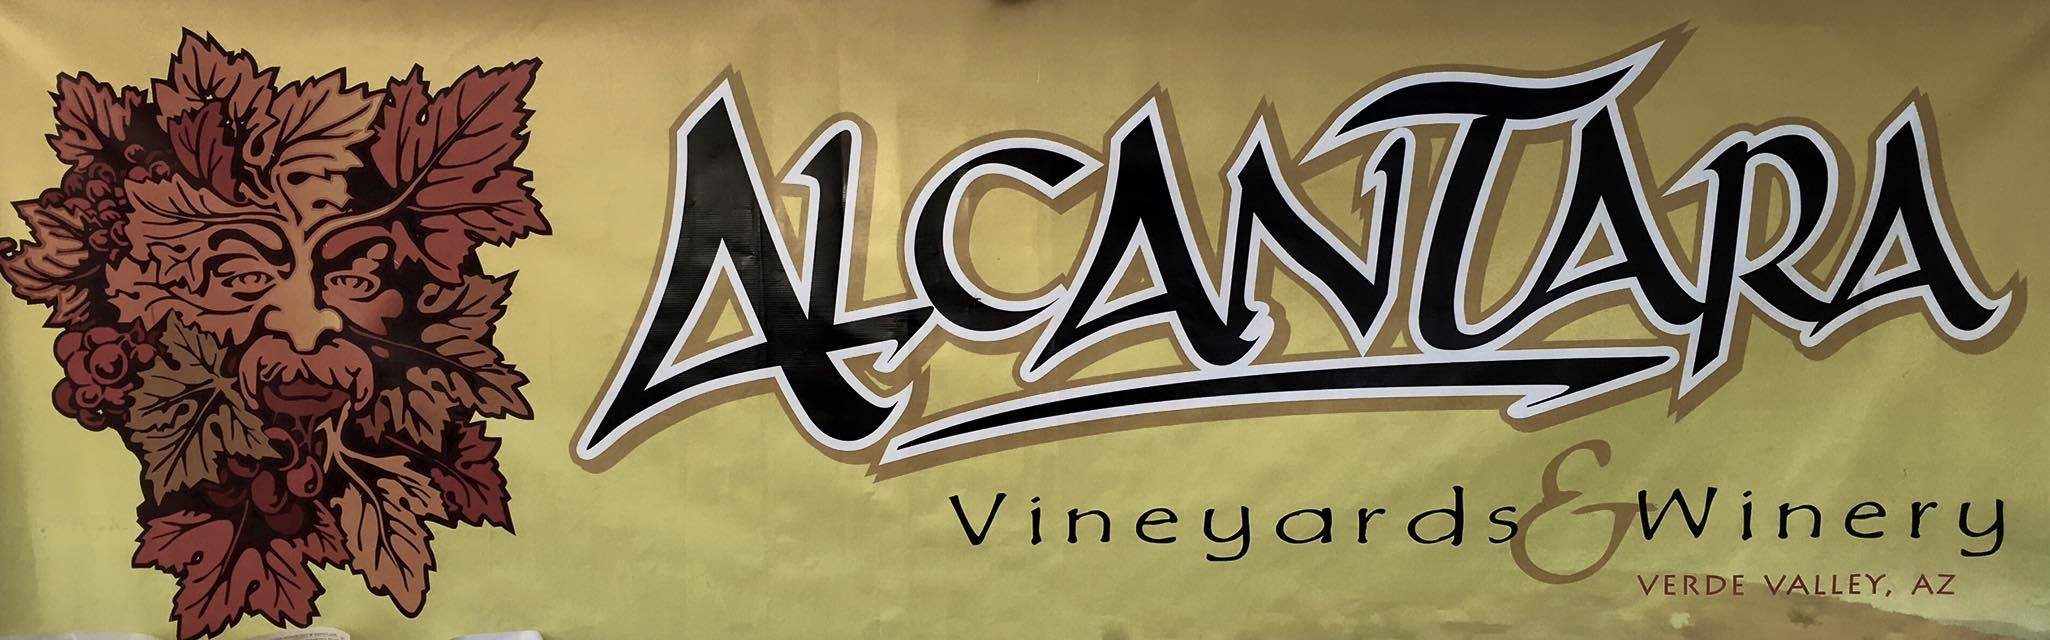 Alcantara Vineyards Logo